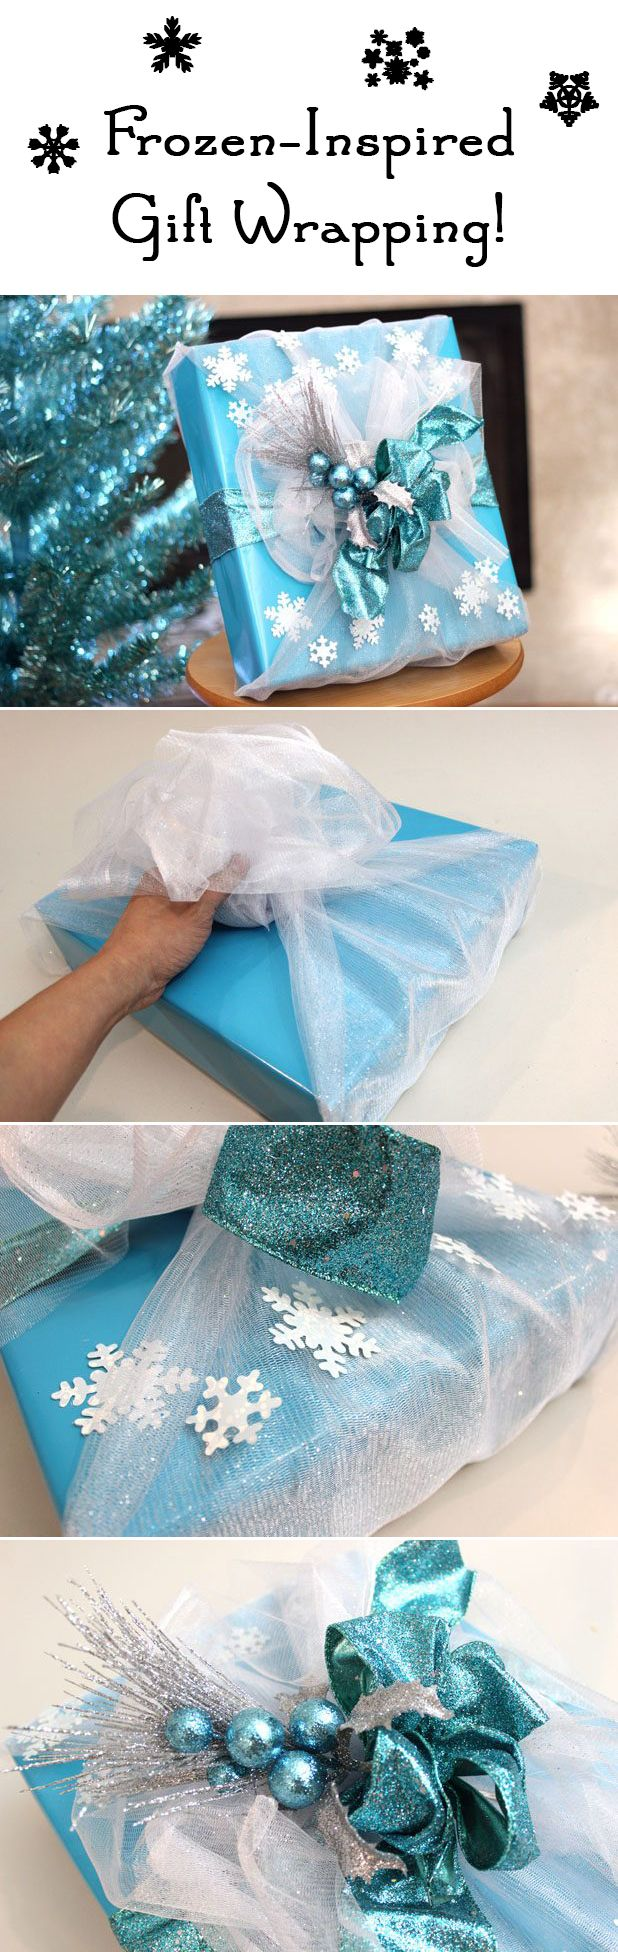 Fans of Frozen are just going to LOVE their gift wrapped with the Disney-inspired decor.  Glittery blue accents and snowflakes resemble Elsa's dress! http://www.ehow.com/how_12340338_frozeninspired-gift-wrap.html?utm_source=pinterest&utm_medium=fanpage&utm_content=inline